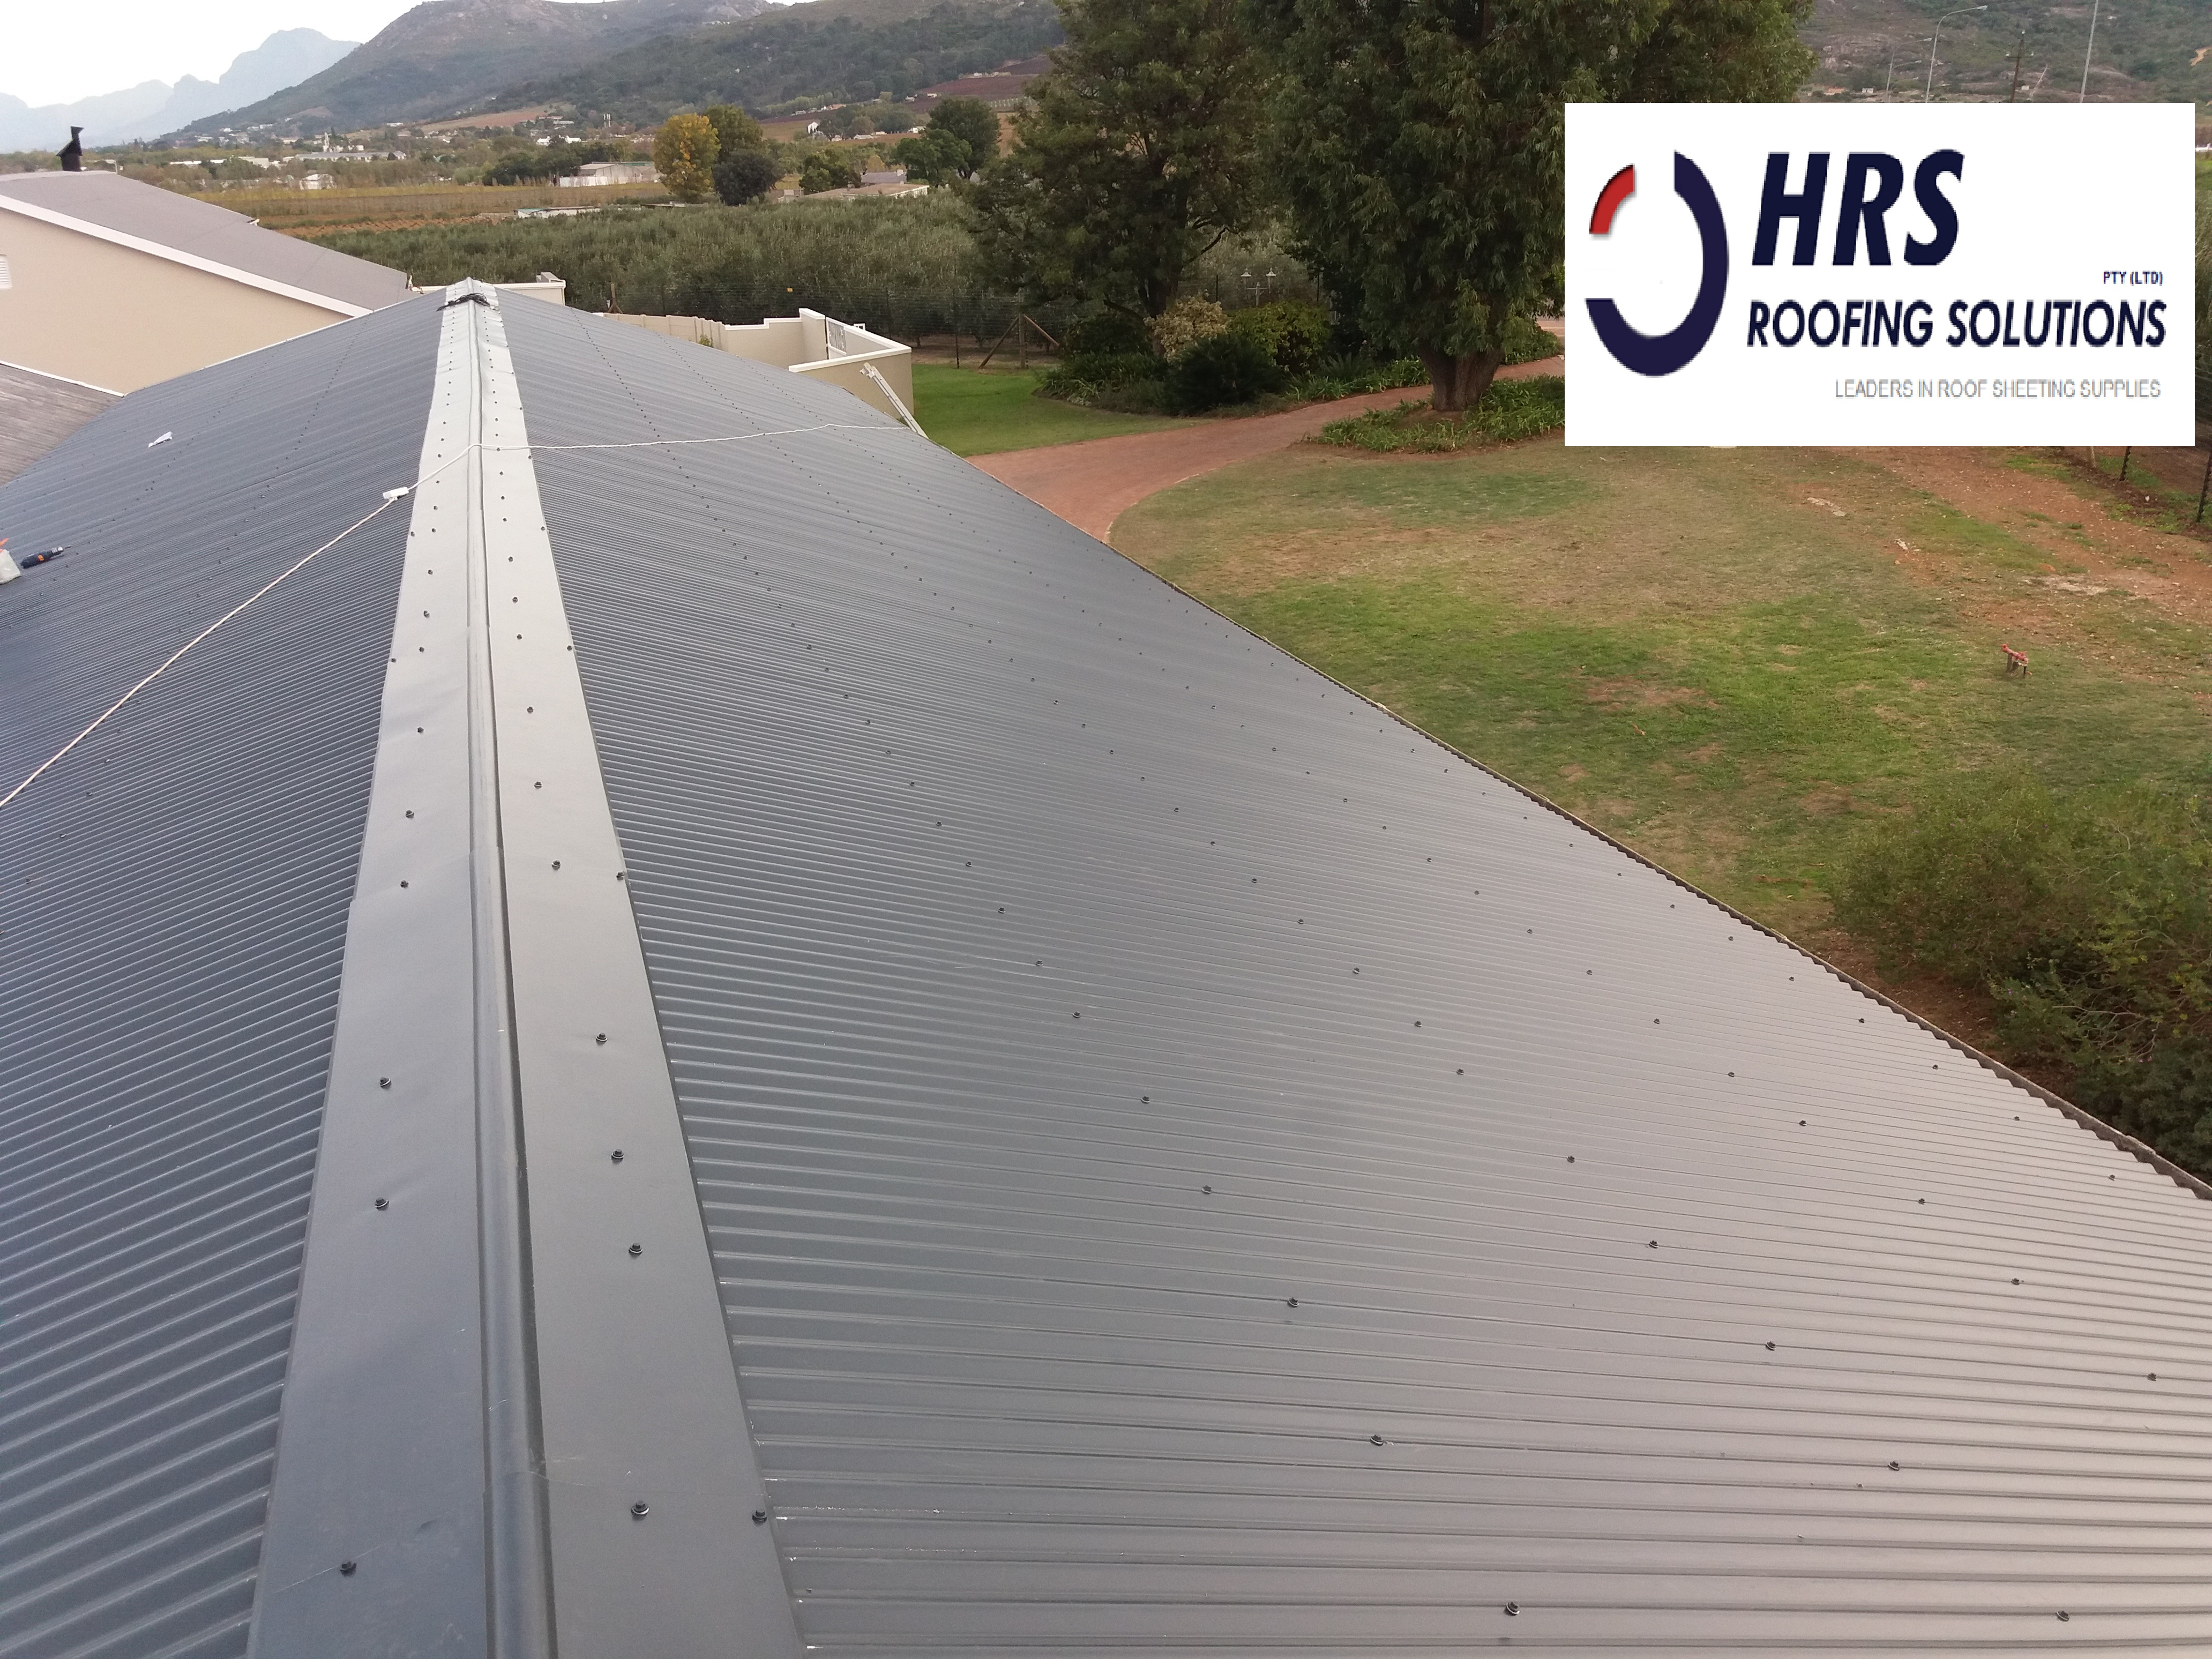 Roof sheets cape town, hrs roofing, ibr and corrugated zincalume and colorbond rof sheets polycarbonate roof sheets 1 vredenburg